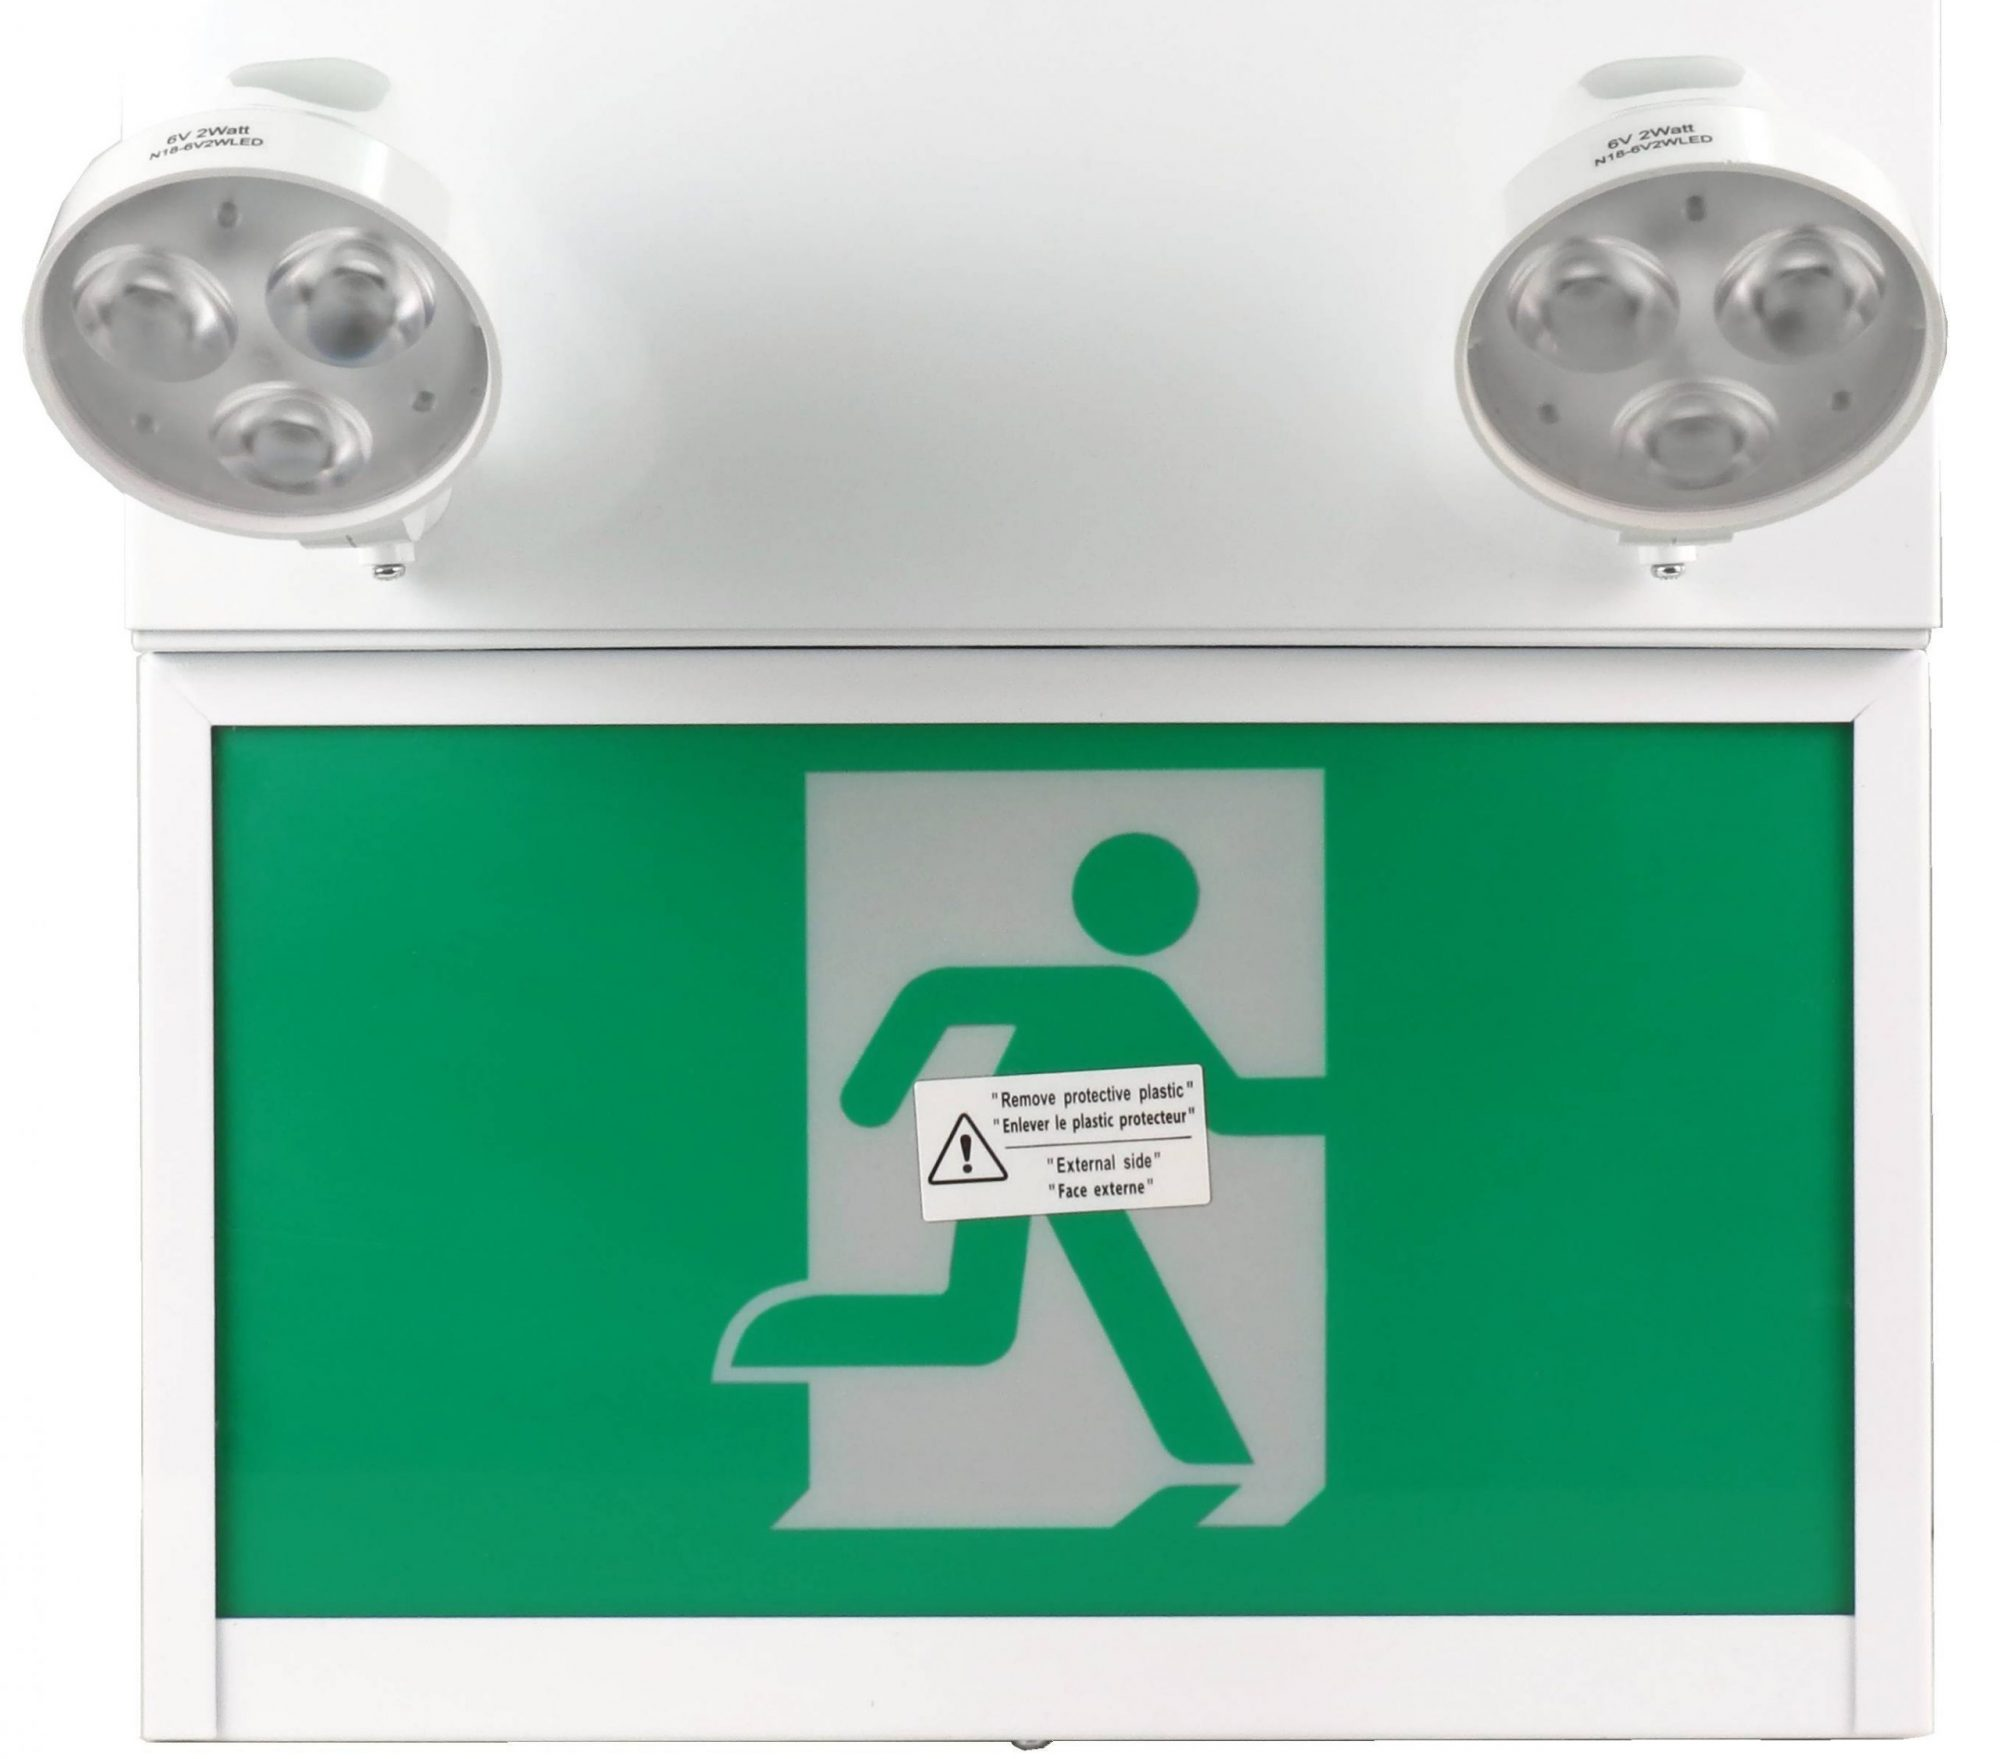 Emergency light for safety